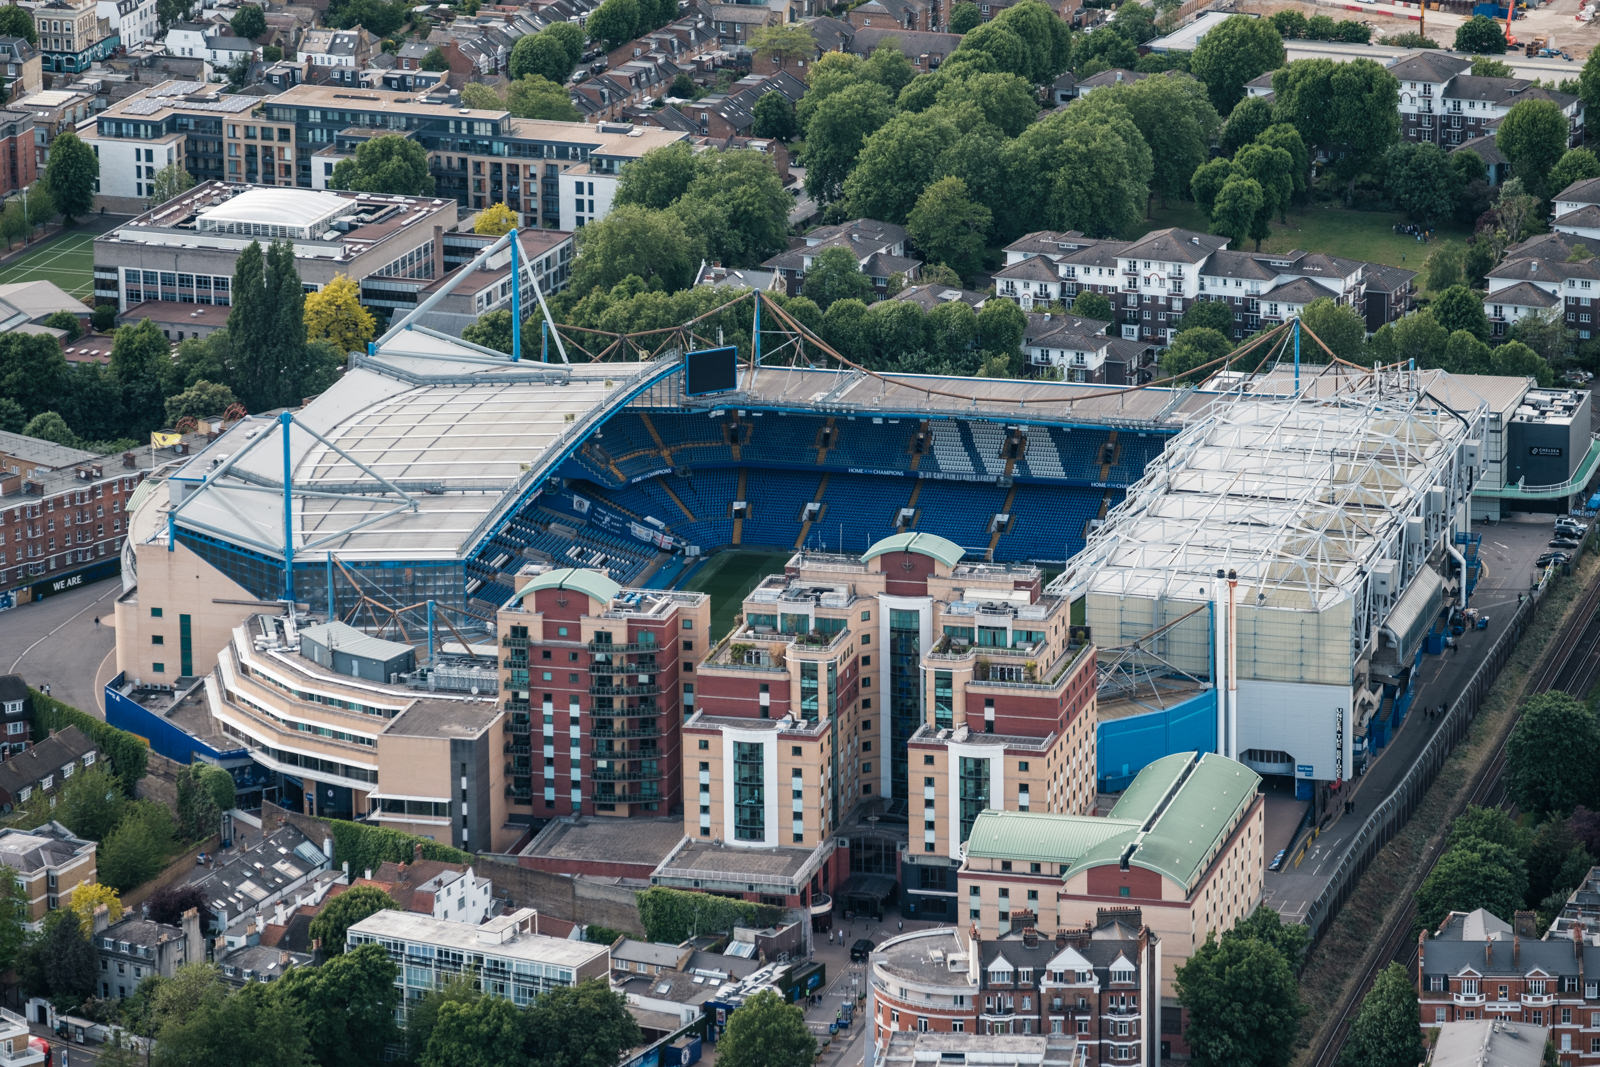 Home of Champions, Chelsea FC -  with 50-140mm f2.8 @115mm, f2.8, iso400, 1/1000s